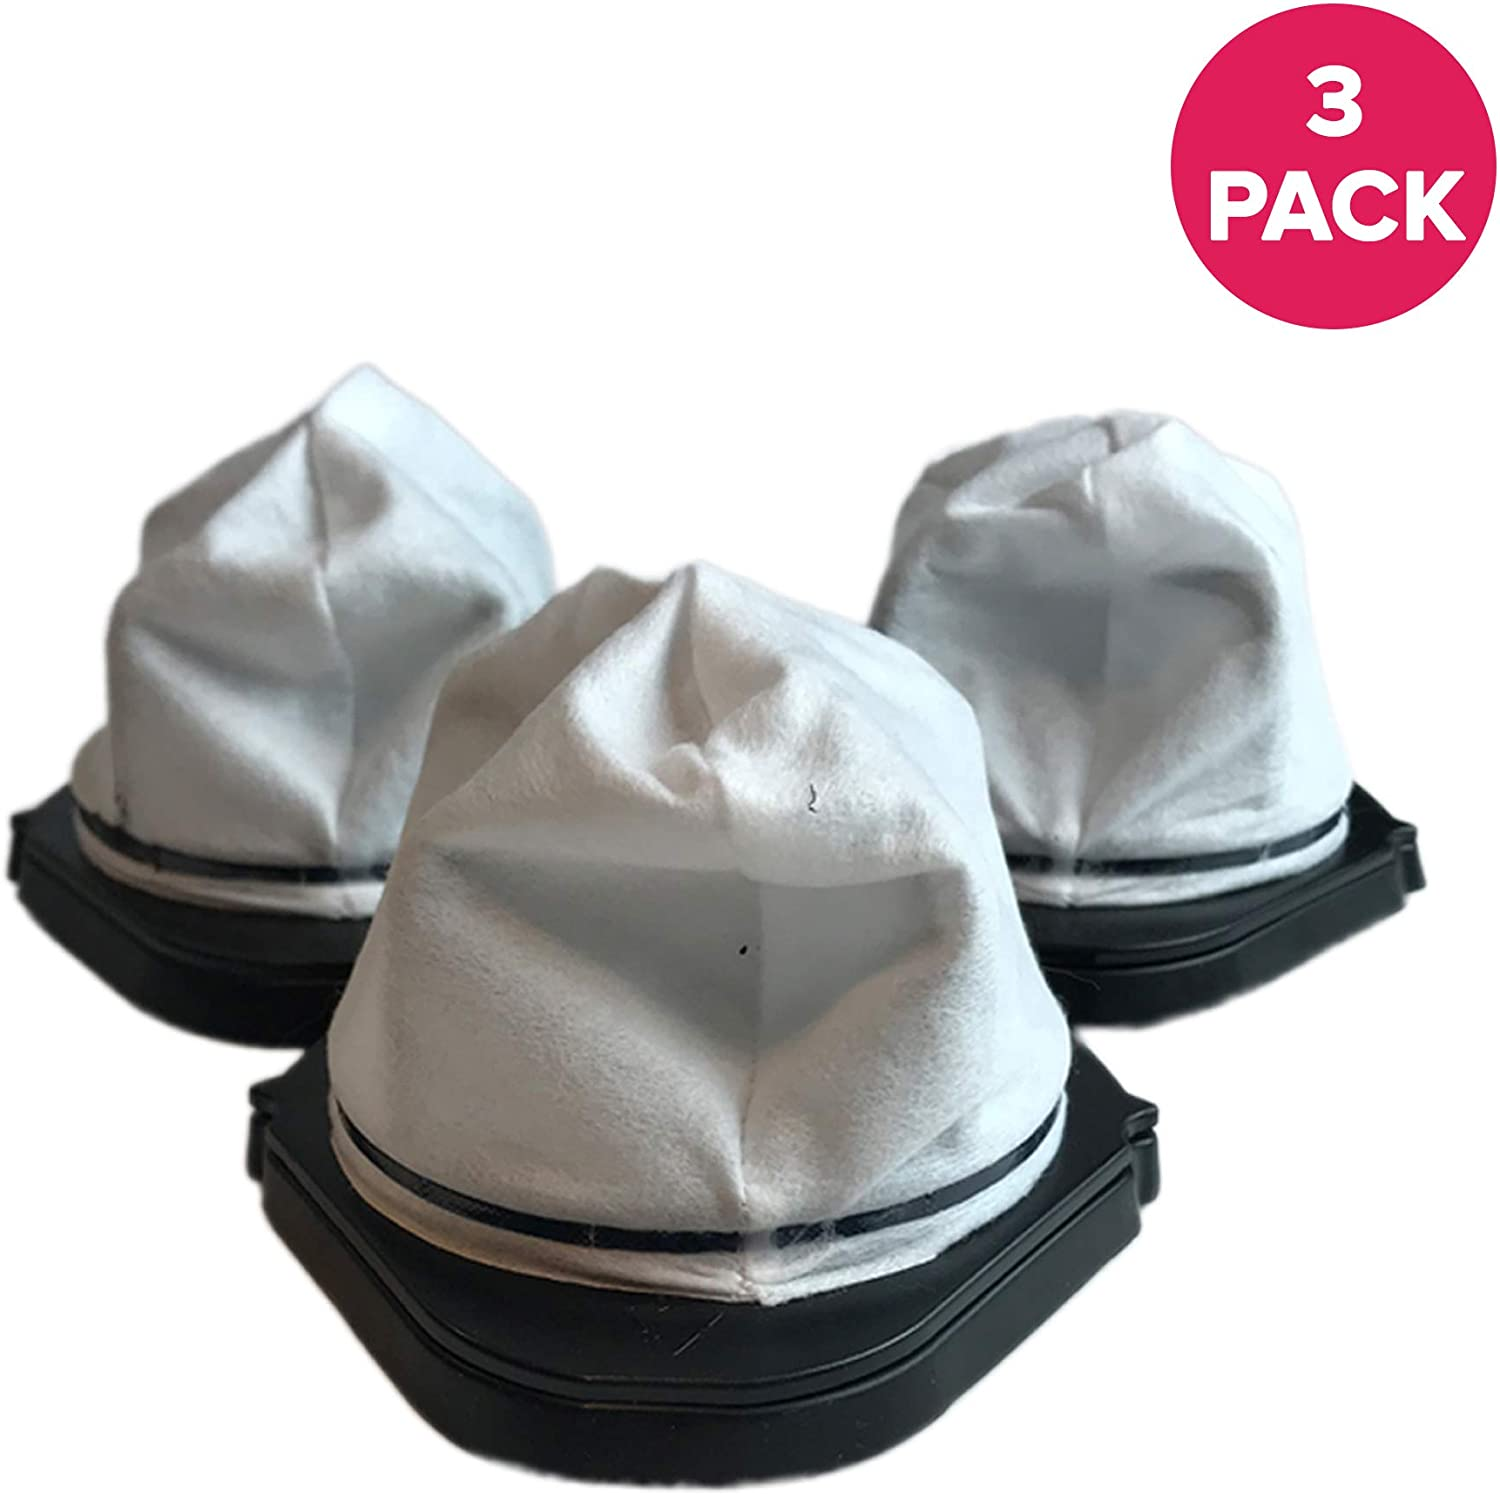 Crucial Vacuum Replacements Vacuum Dust Cup Filter Compatible with Shark Part # XF769,XSB726N & Models SV728NC,SV728N-1,SV736,SV738,SV738C,SV738CV,SV748,SV726N,SV728N,SV719,SV736R,SV736CR (3 Pack)